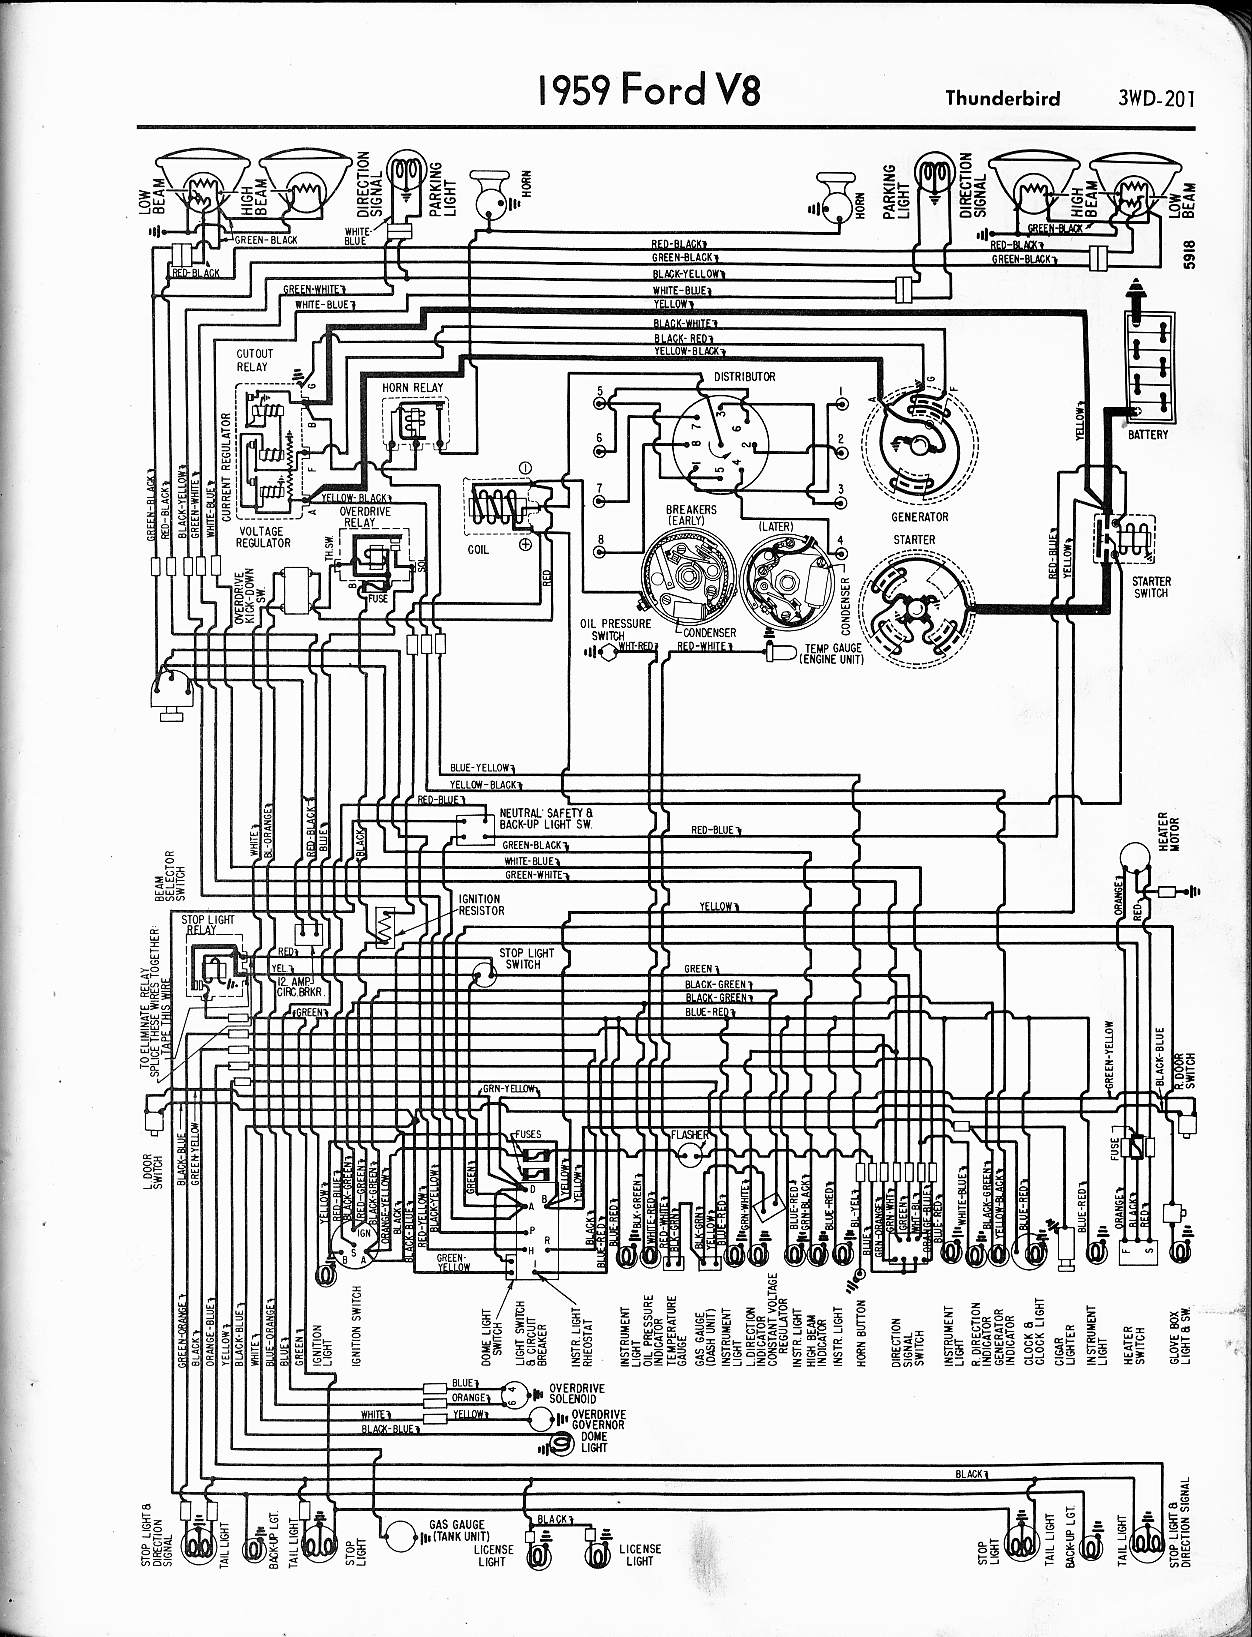 tail light wiring diagram 1956 f100 best wiring library rh 36 princestaash org